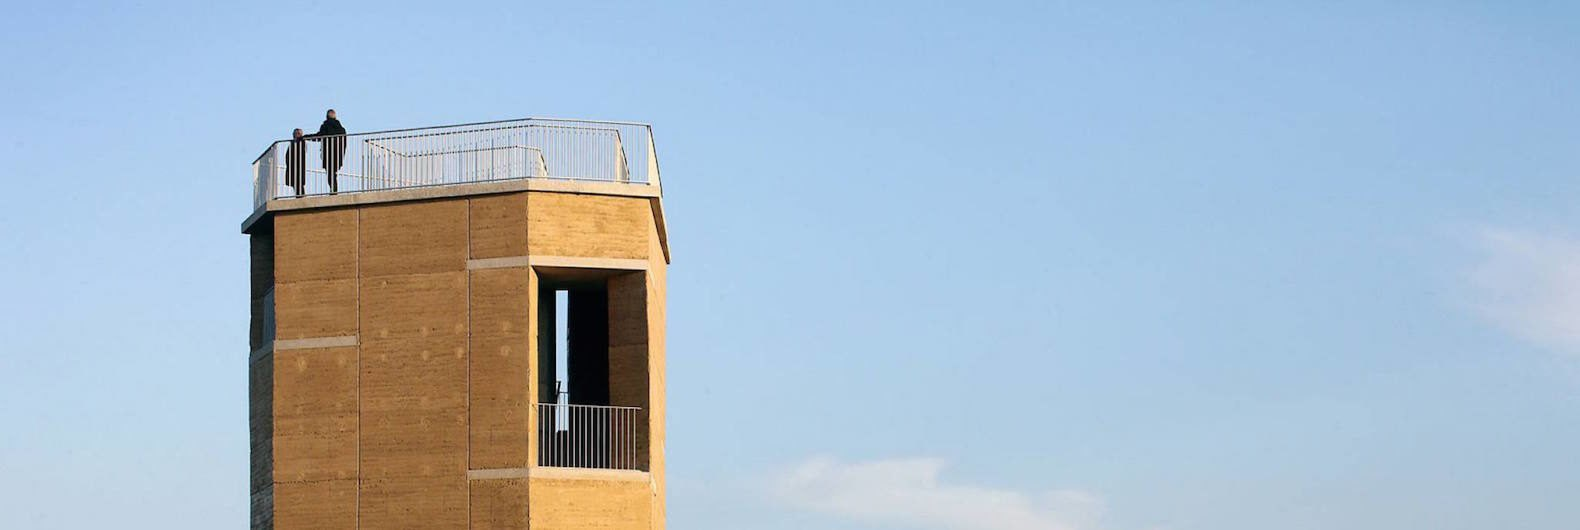 Rammed Earth Walls Clad An Observation Tower To Blend Into A Belgian Nature  Reserve